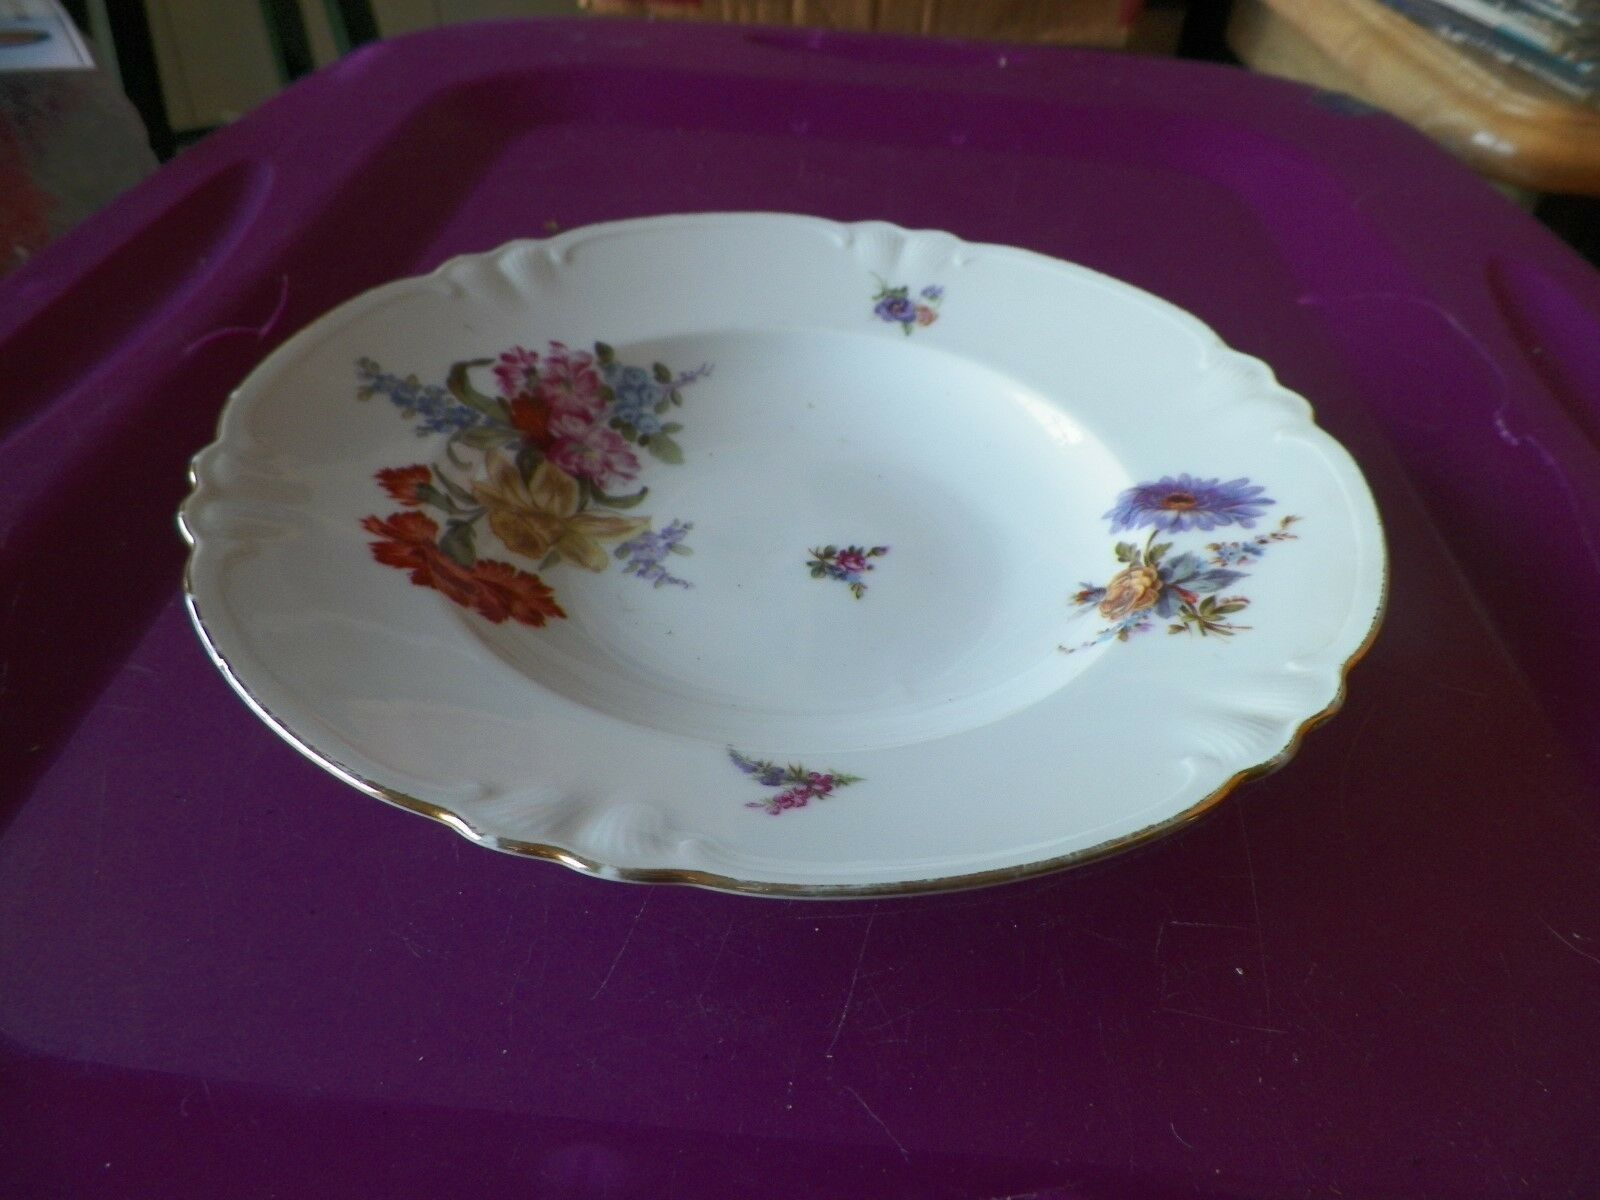 Hutschenreuther 8 5/8 soup bowl 2 available Quantity Discounts available - $4.90